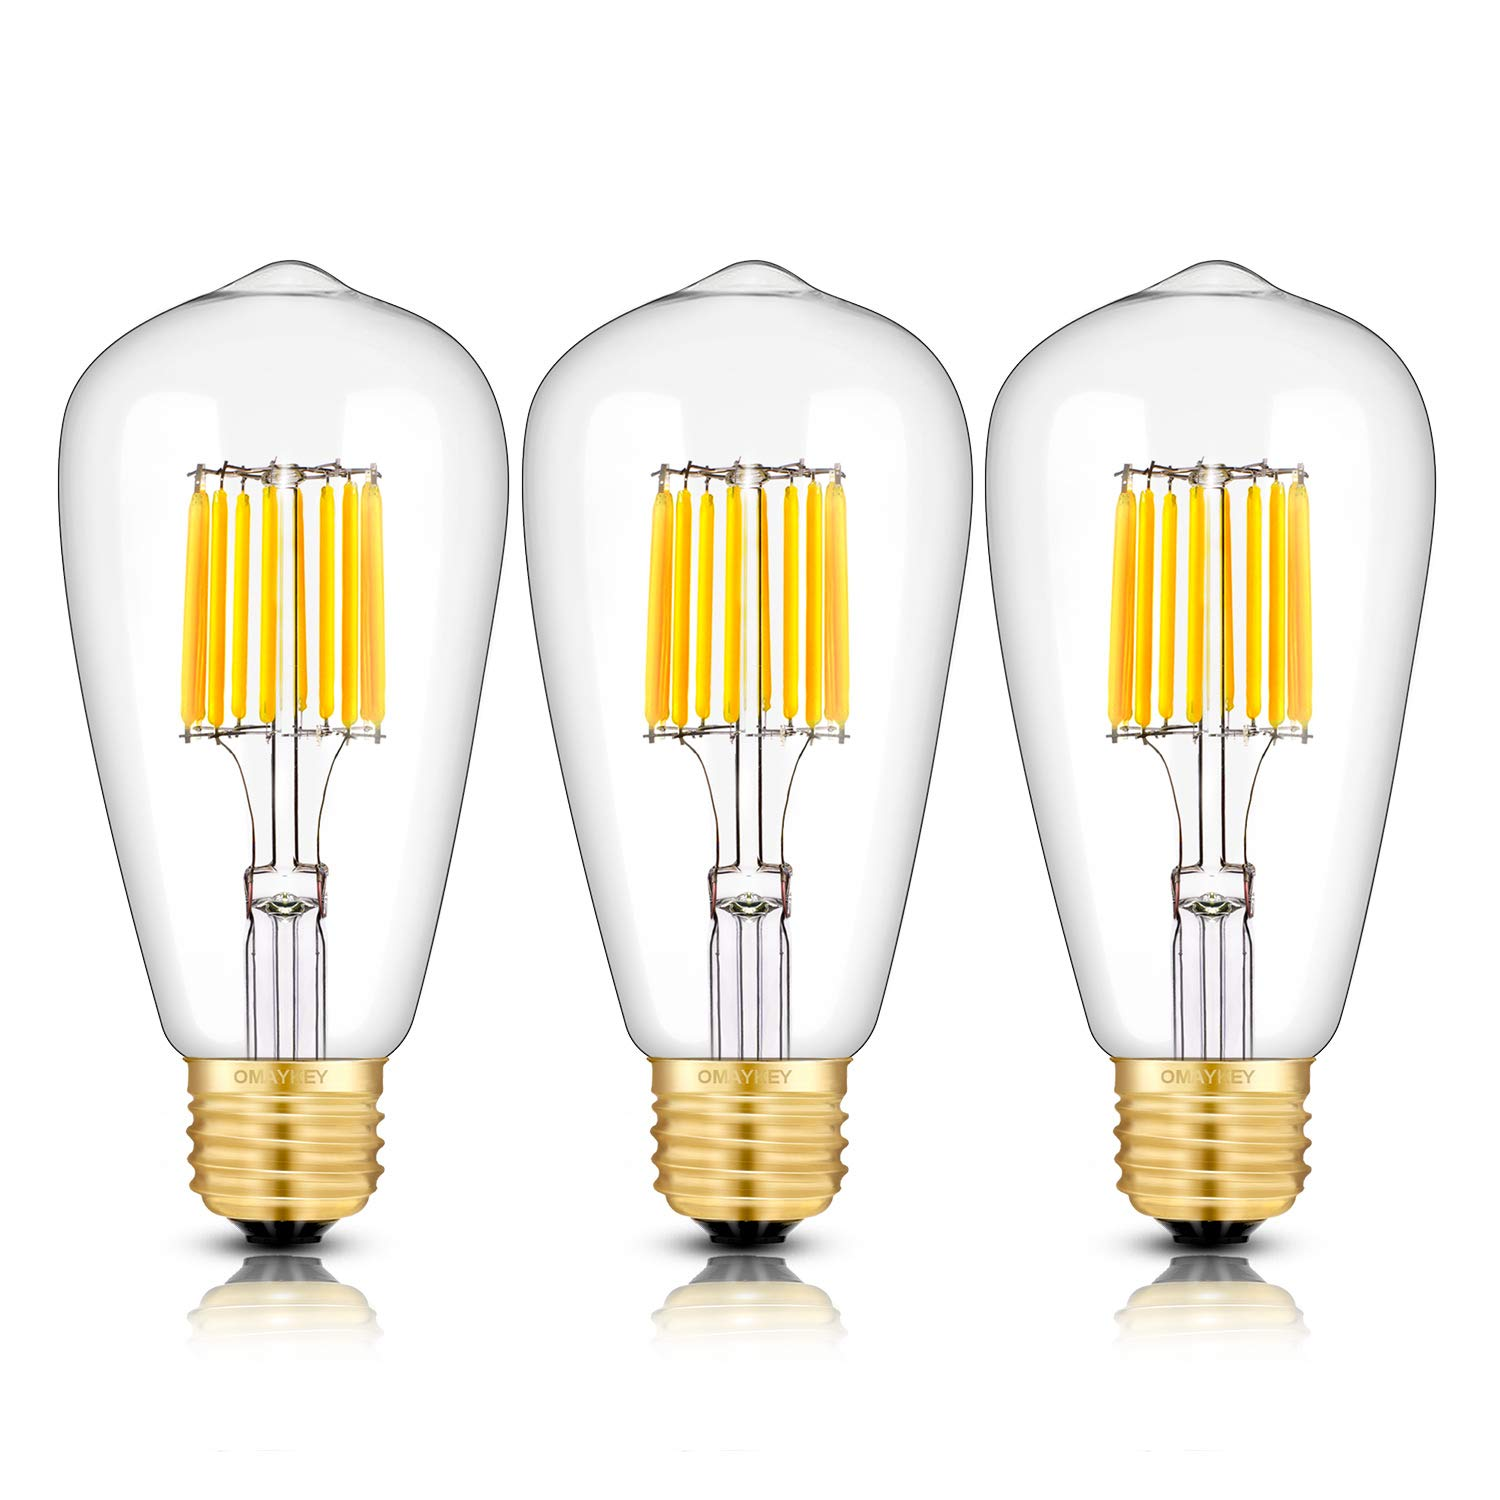 OMAYKEY 10W Dimmable LED Edison Bulb 100W Equivalent 1000 Lumens, 3000K Soft White Glow E26 Medium Base, ST64 Vintage Edison Style Clear Glass LED Filament Light Bulbs, Deep Dimming Version, 3 Pack